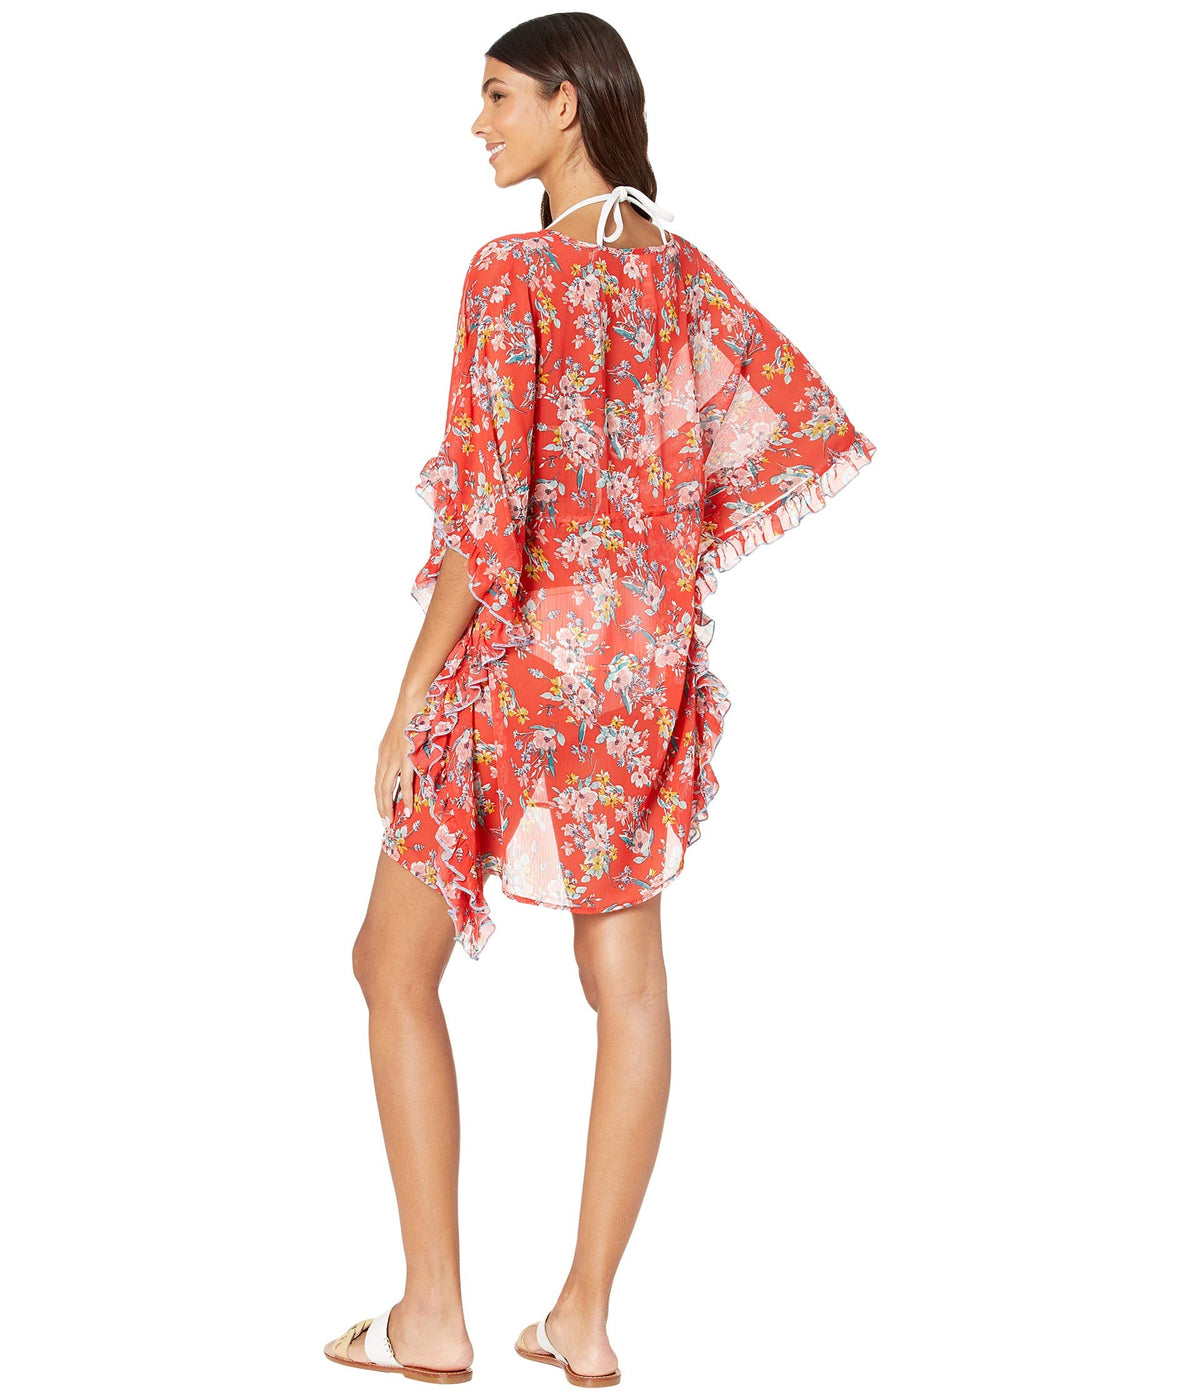 Chantilly Lace Frill Side Chiffon Cover-Up